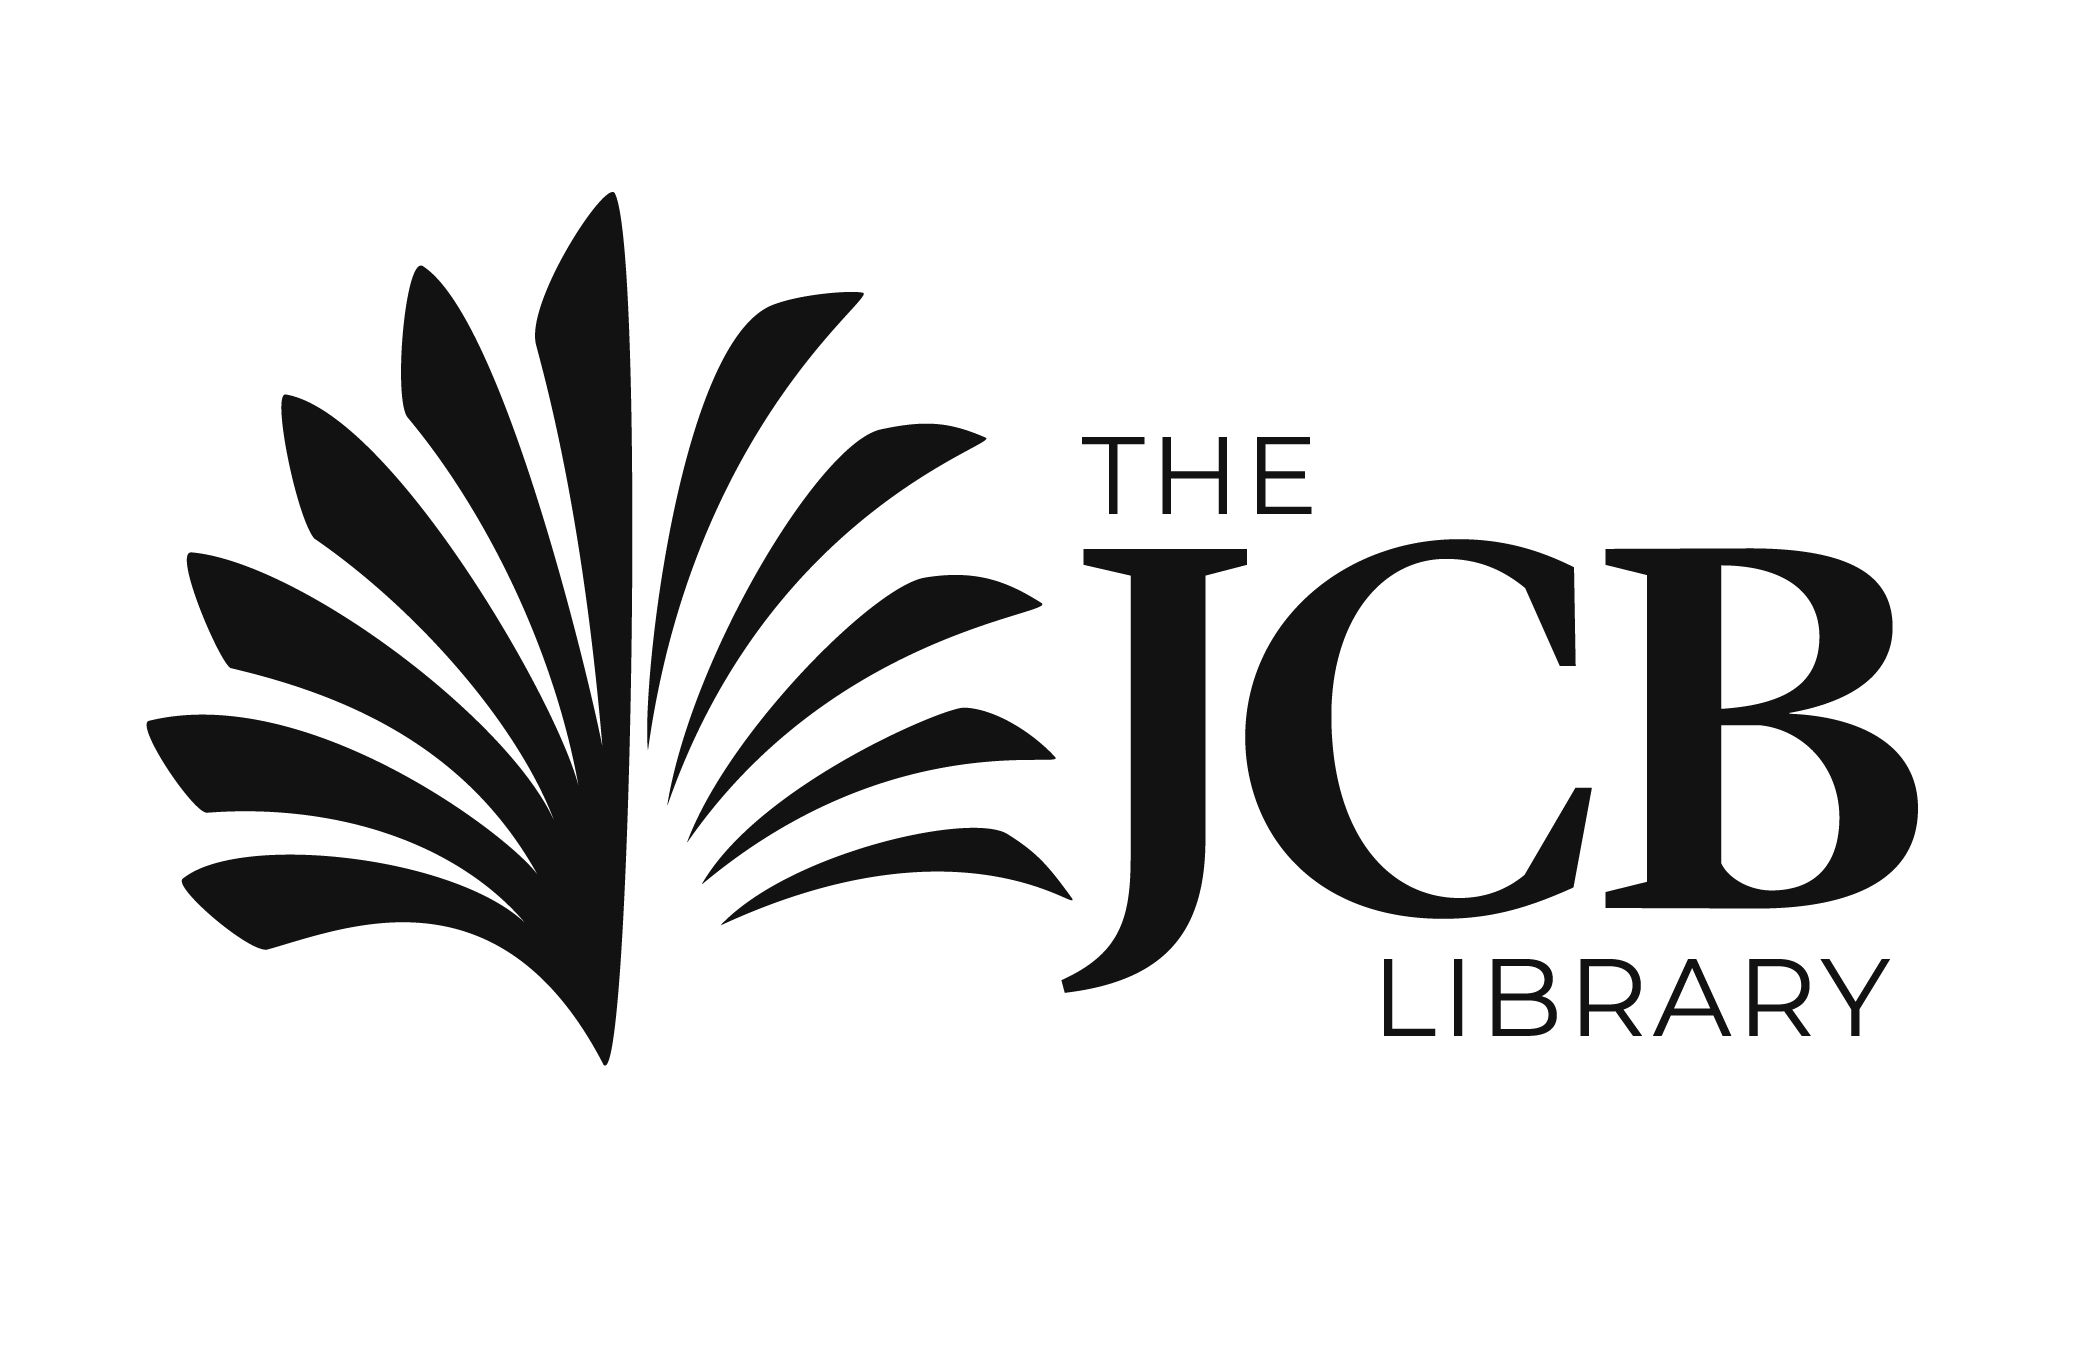 The John Carter Brown Library